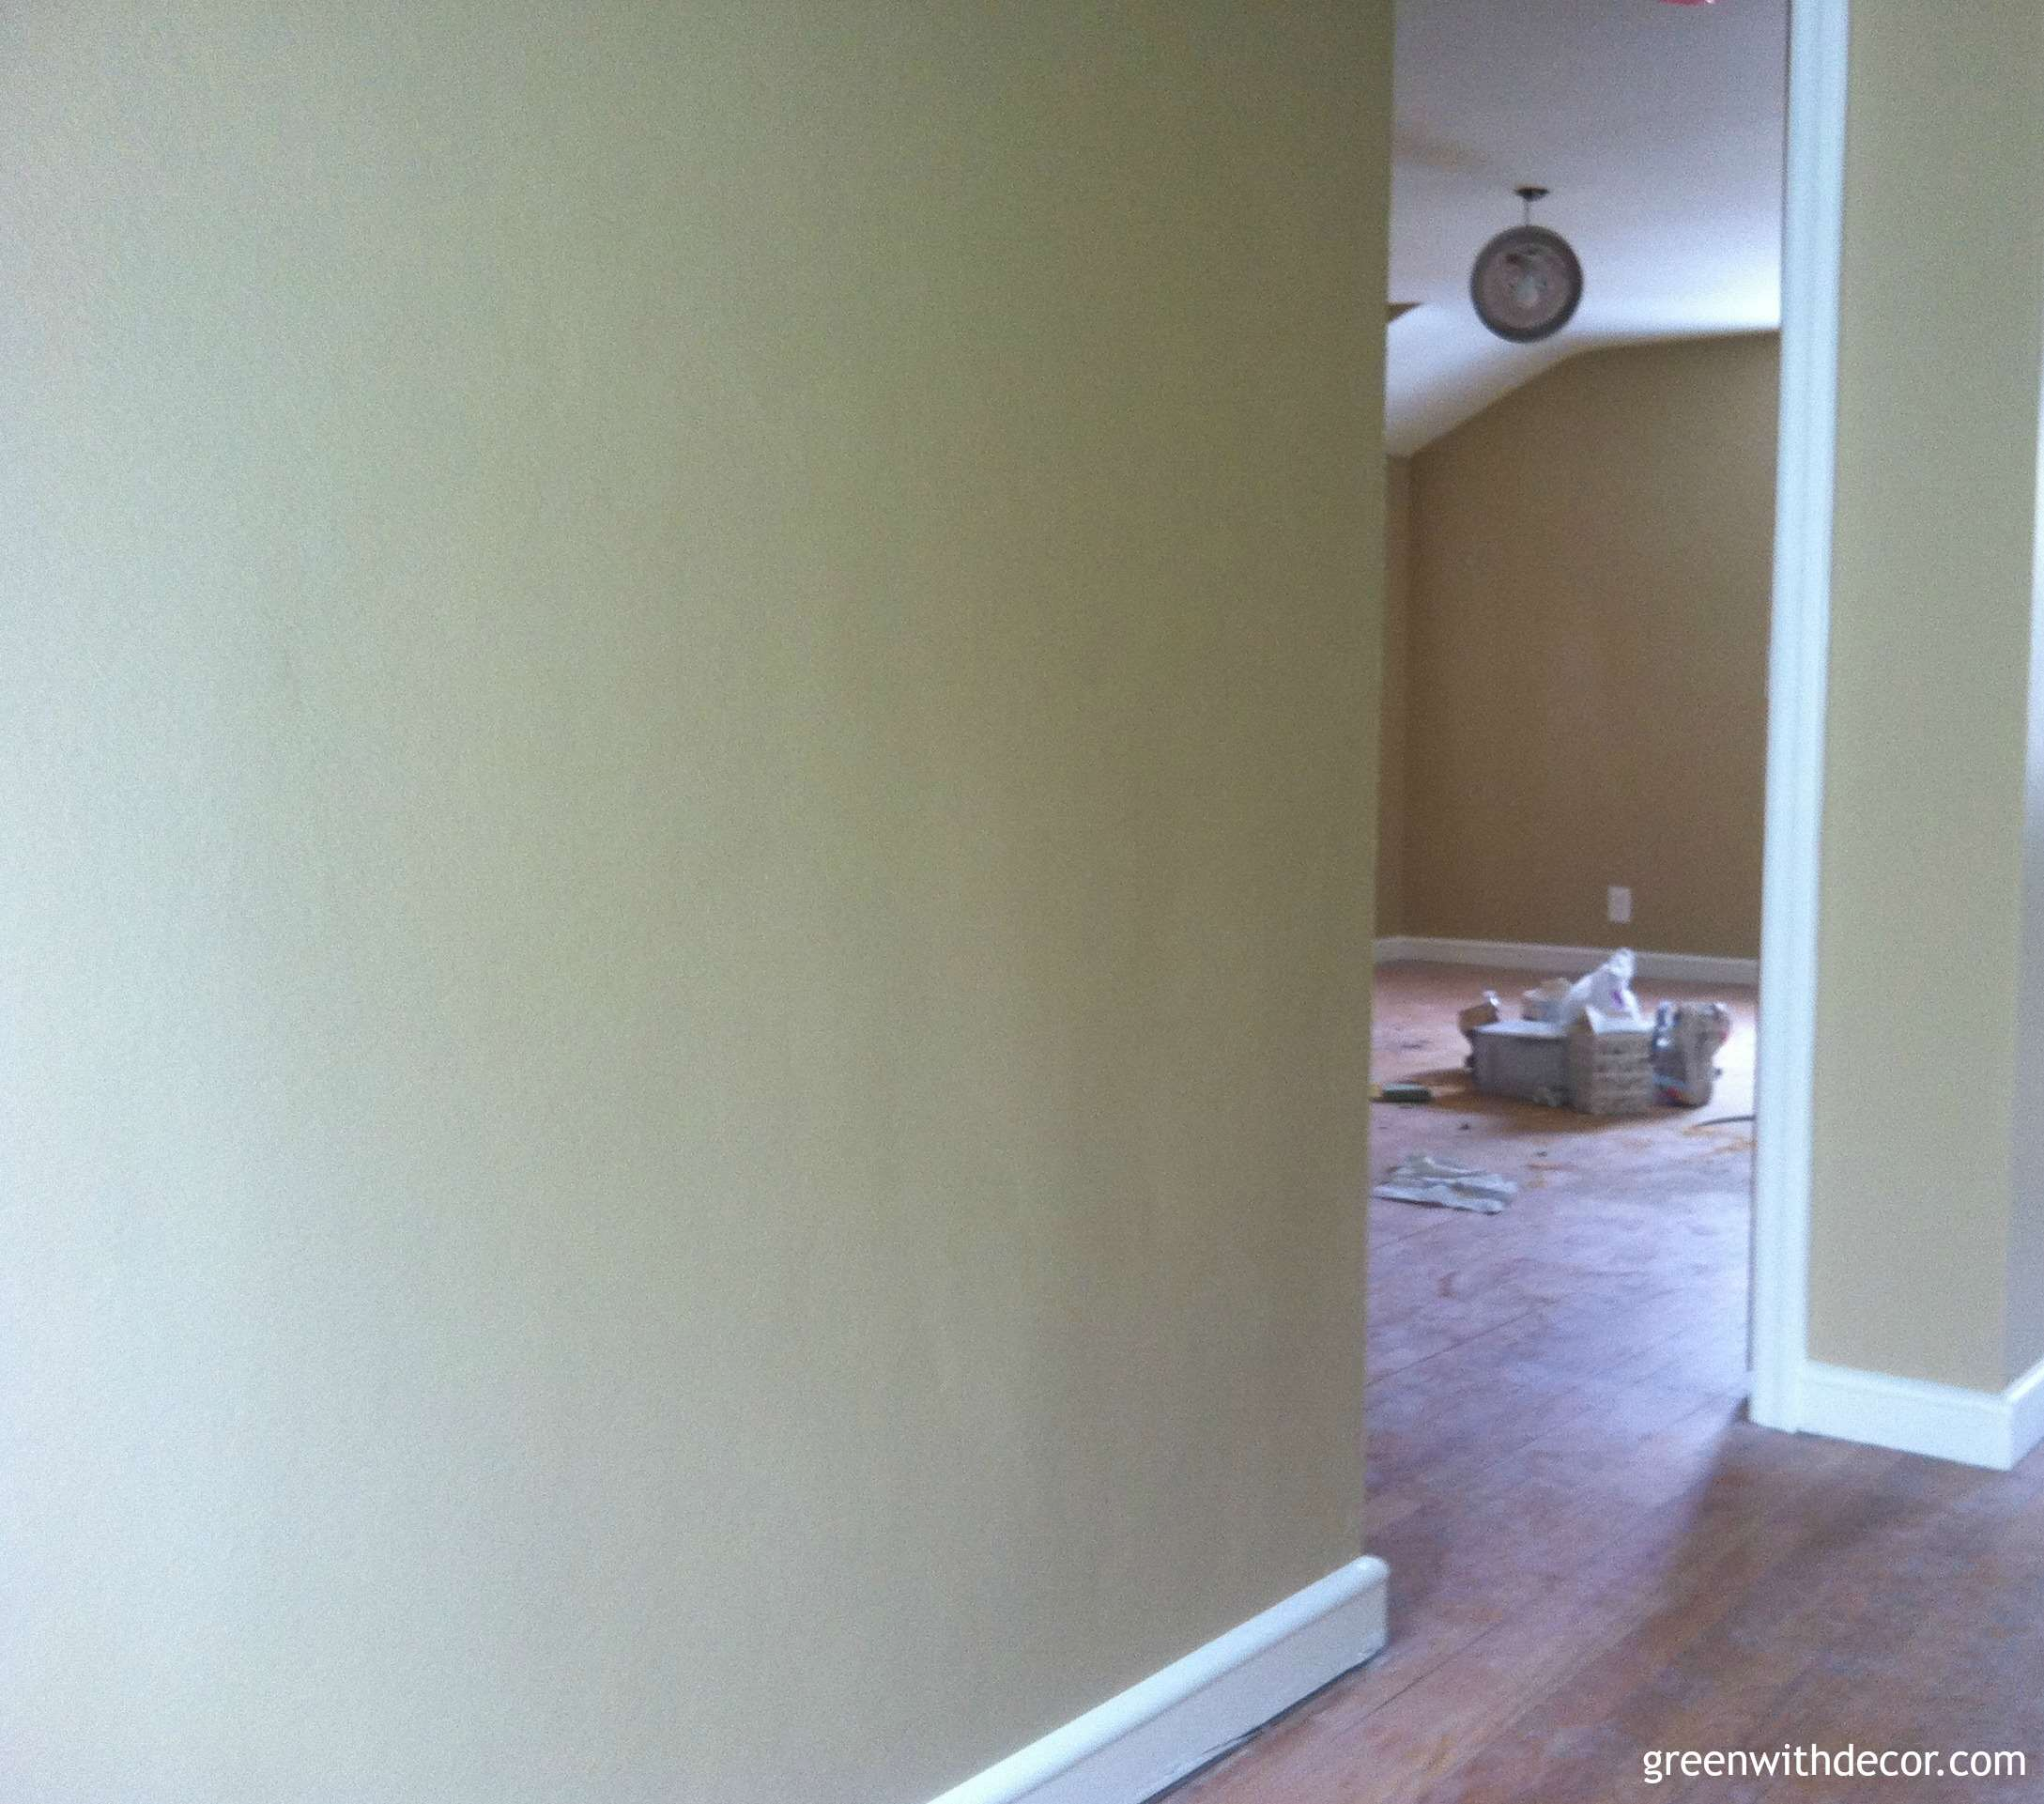 Green With Decor – Sherwin Williams Camelback paint hallway